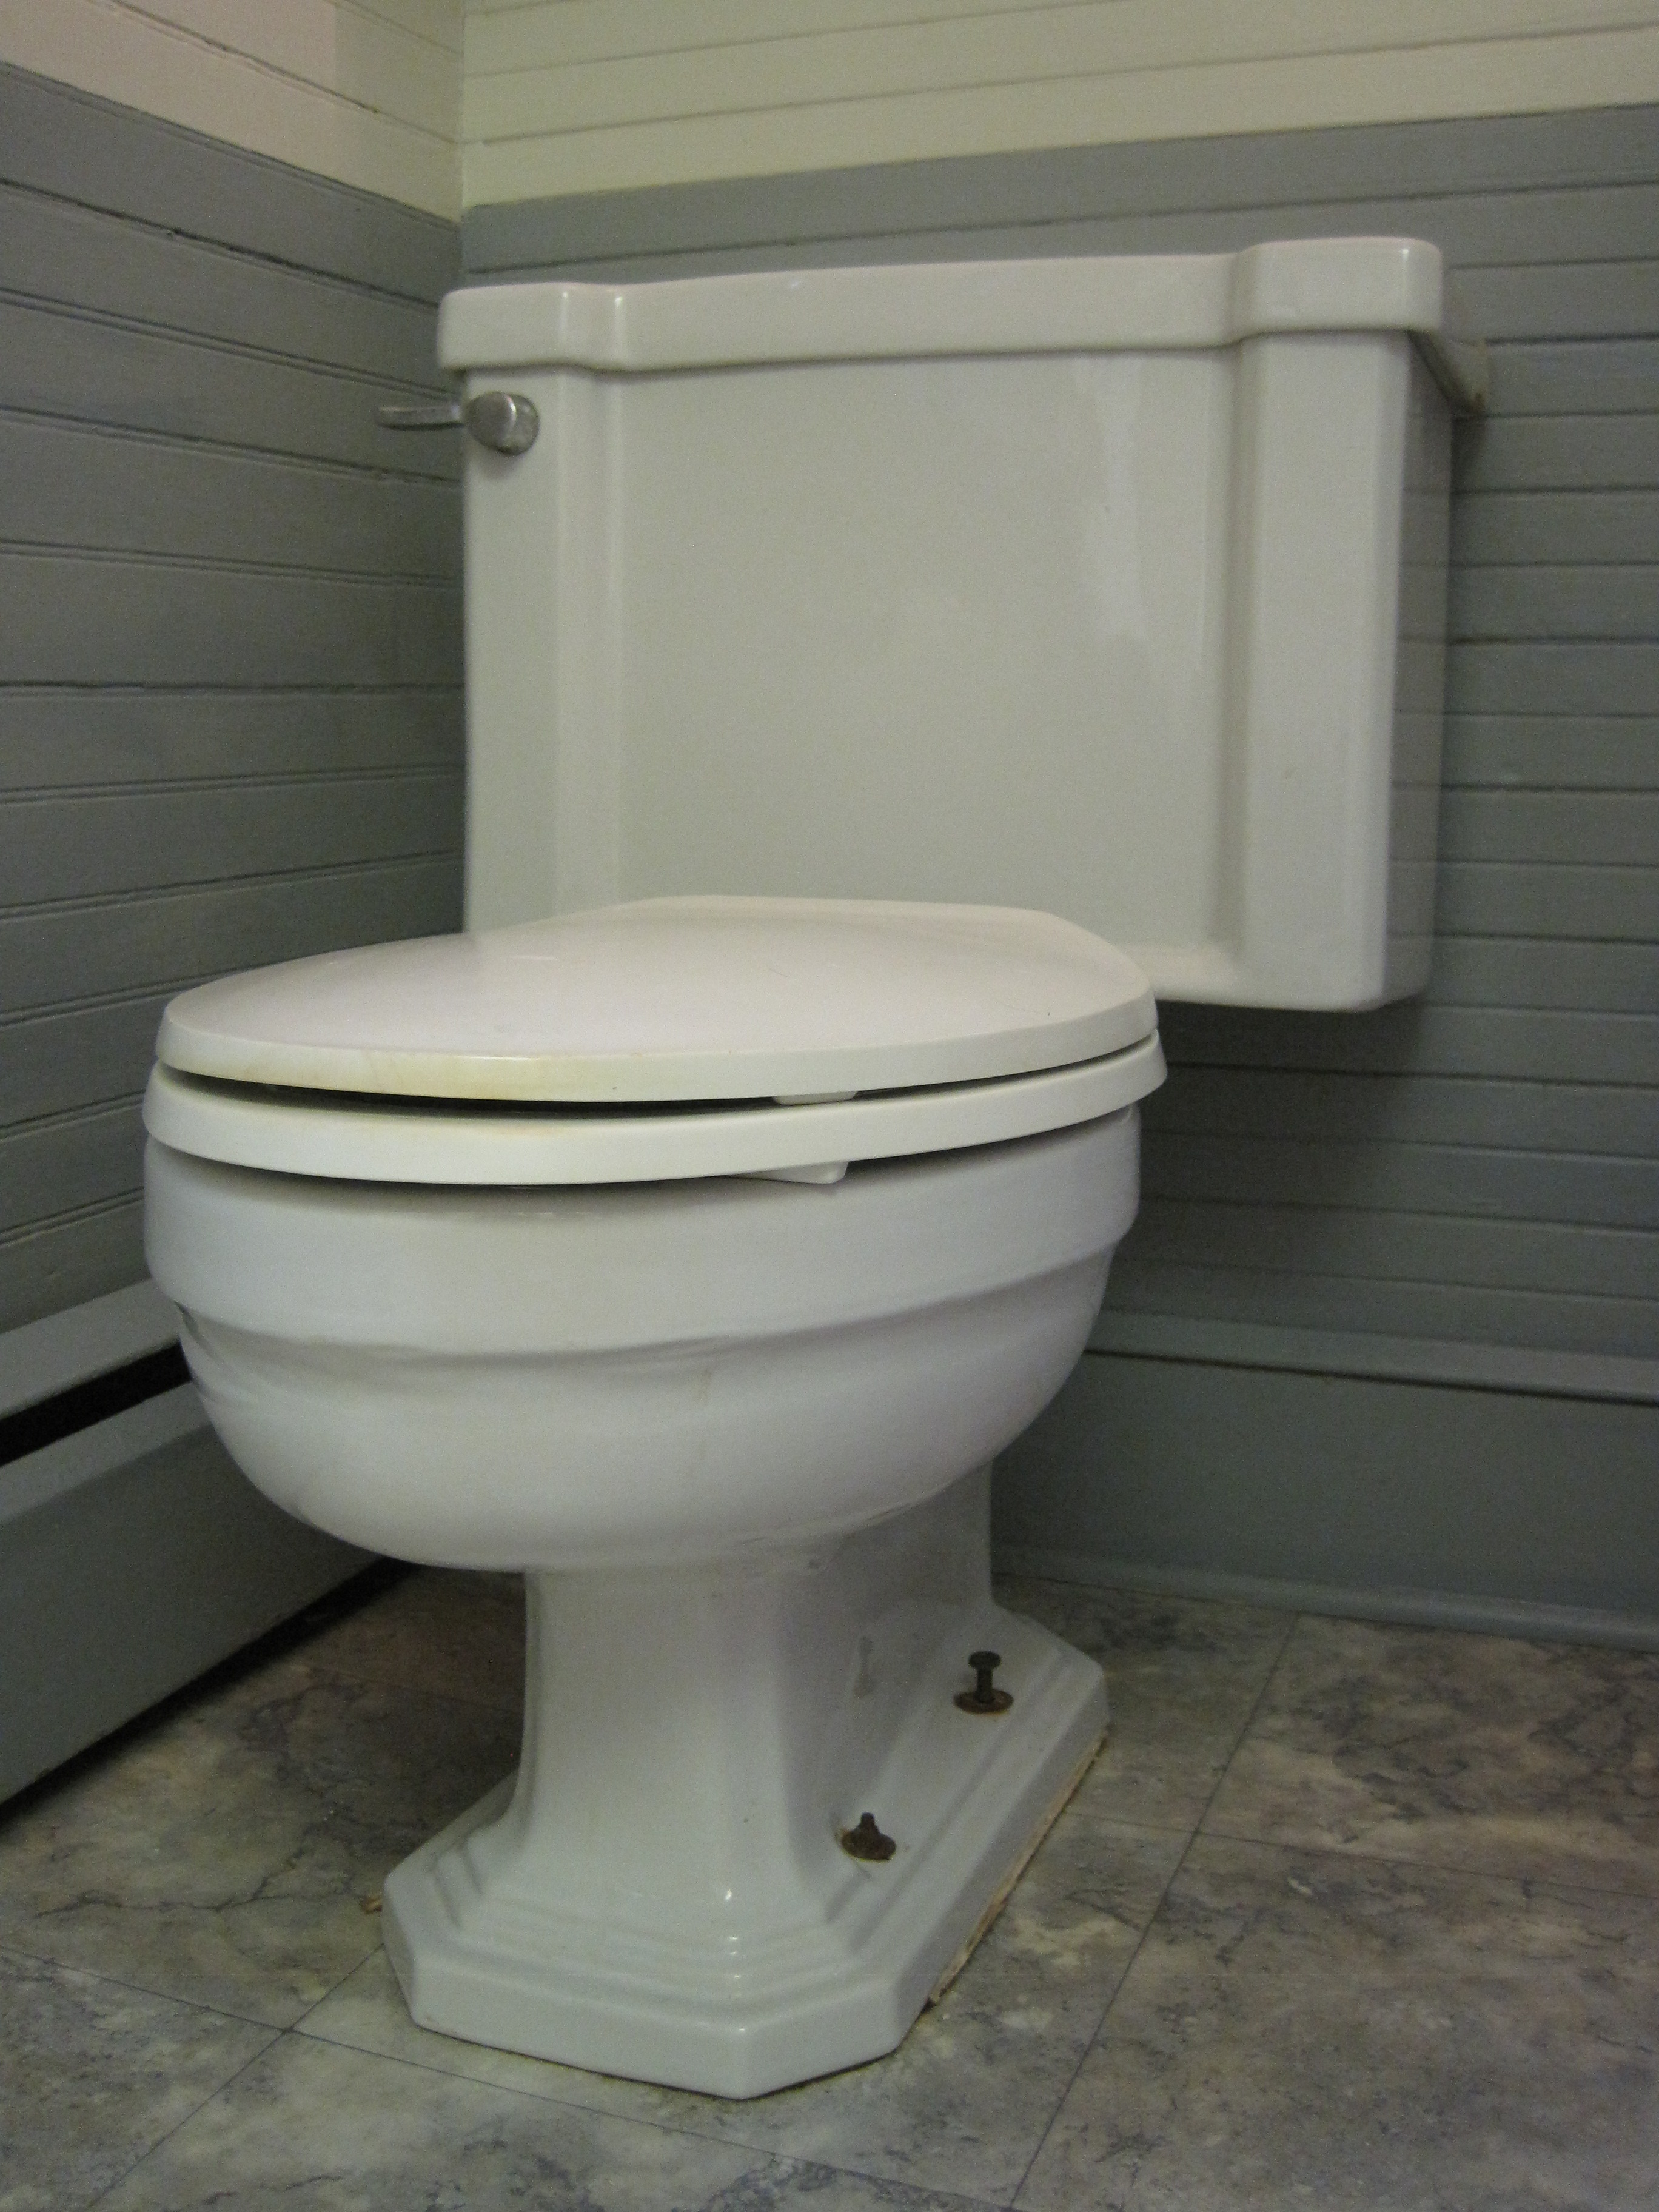 Are Toto Toilets Worth It.TOTO Ultramax II Review: Is It Worth ...